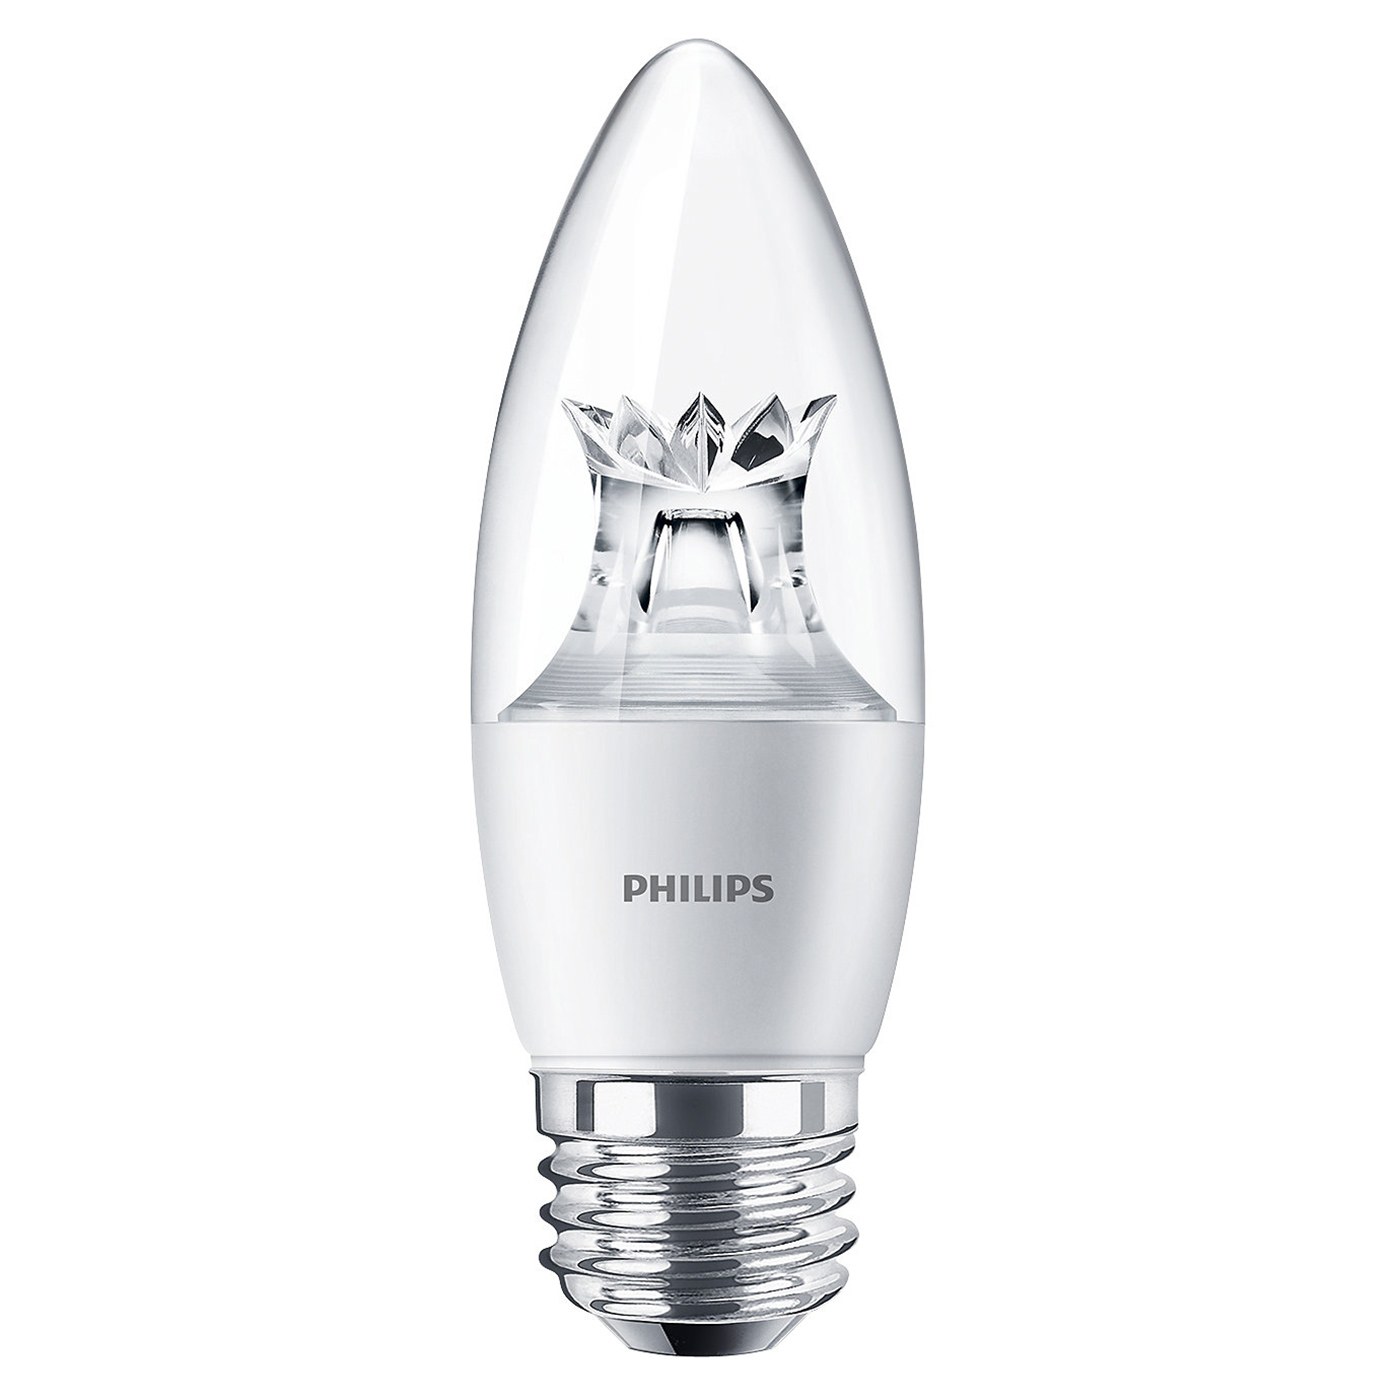 philips 457192 b12 e26 medium screw led dimmable warm glow light ebay. Black Bedroom Furniture Sets. Home Design Ideas